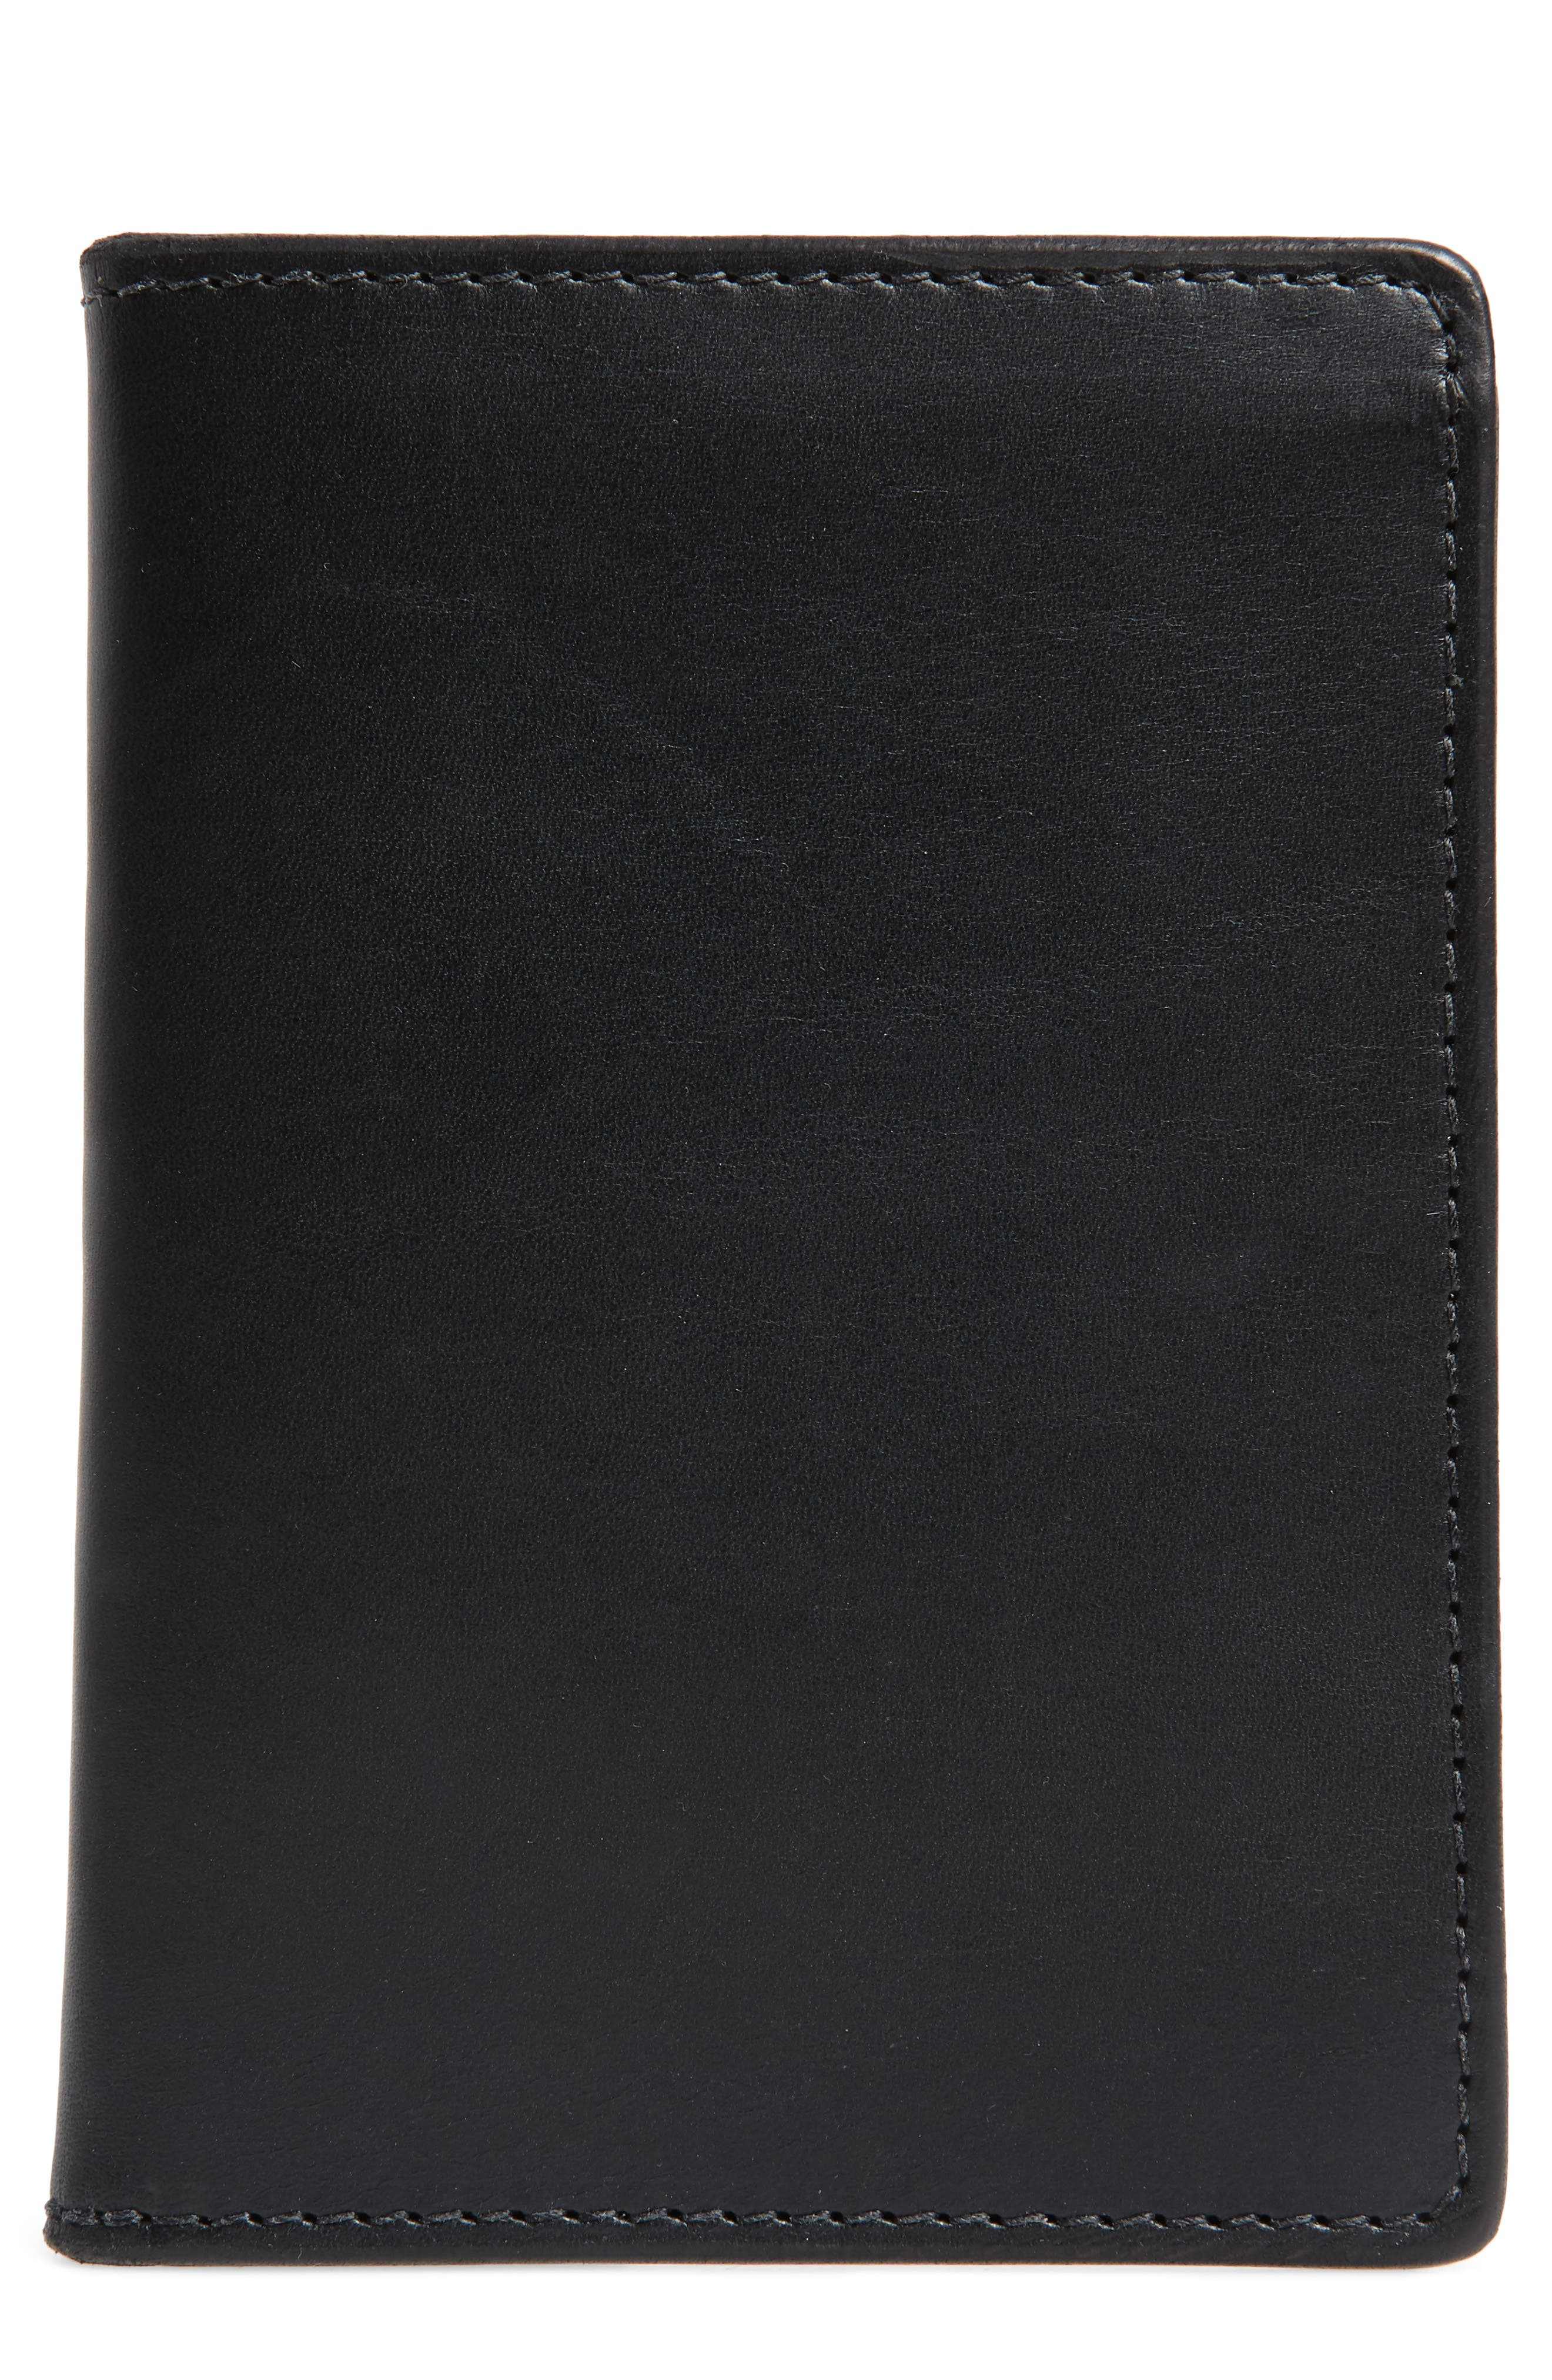 Leather Travel Wallet,                             Main thumbnail 1, color,                             BLACK